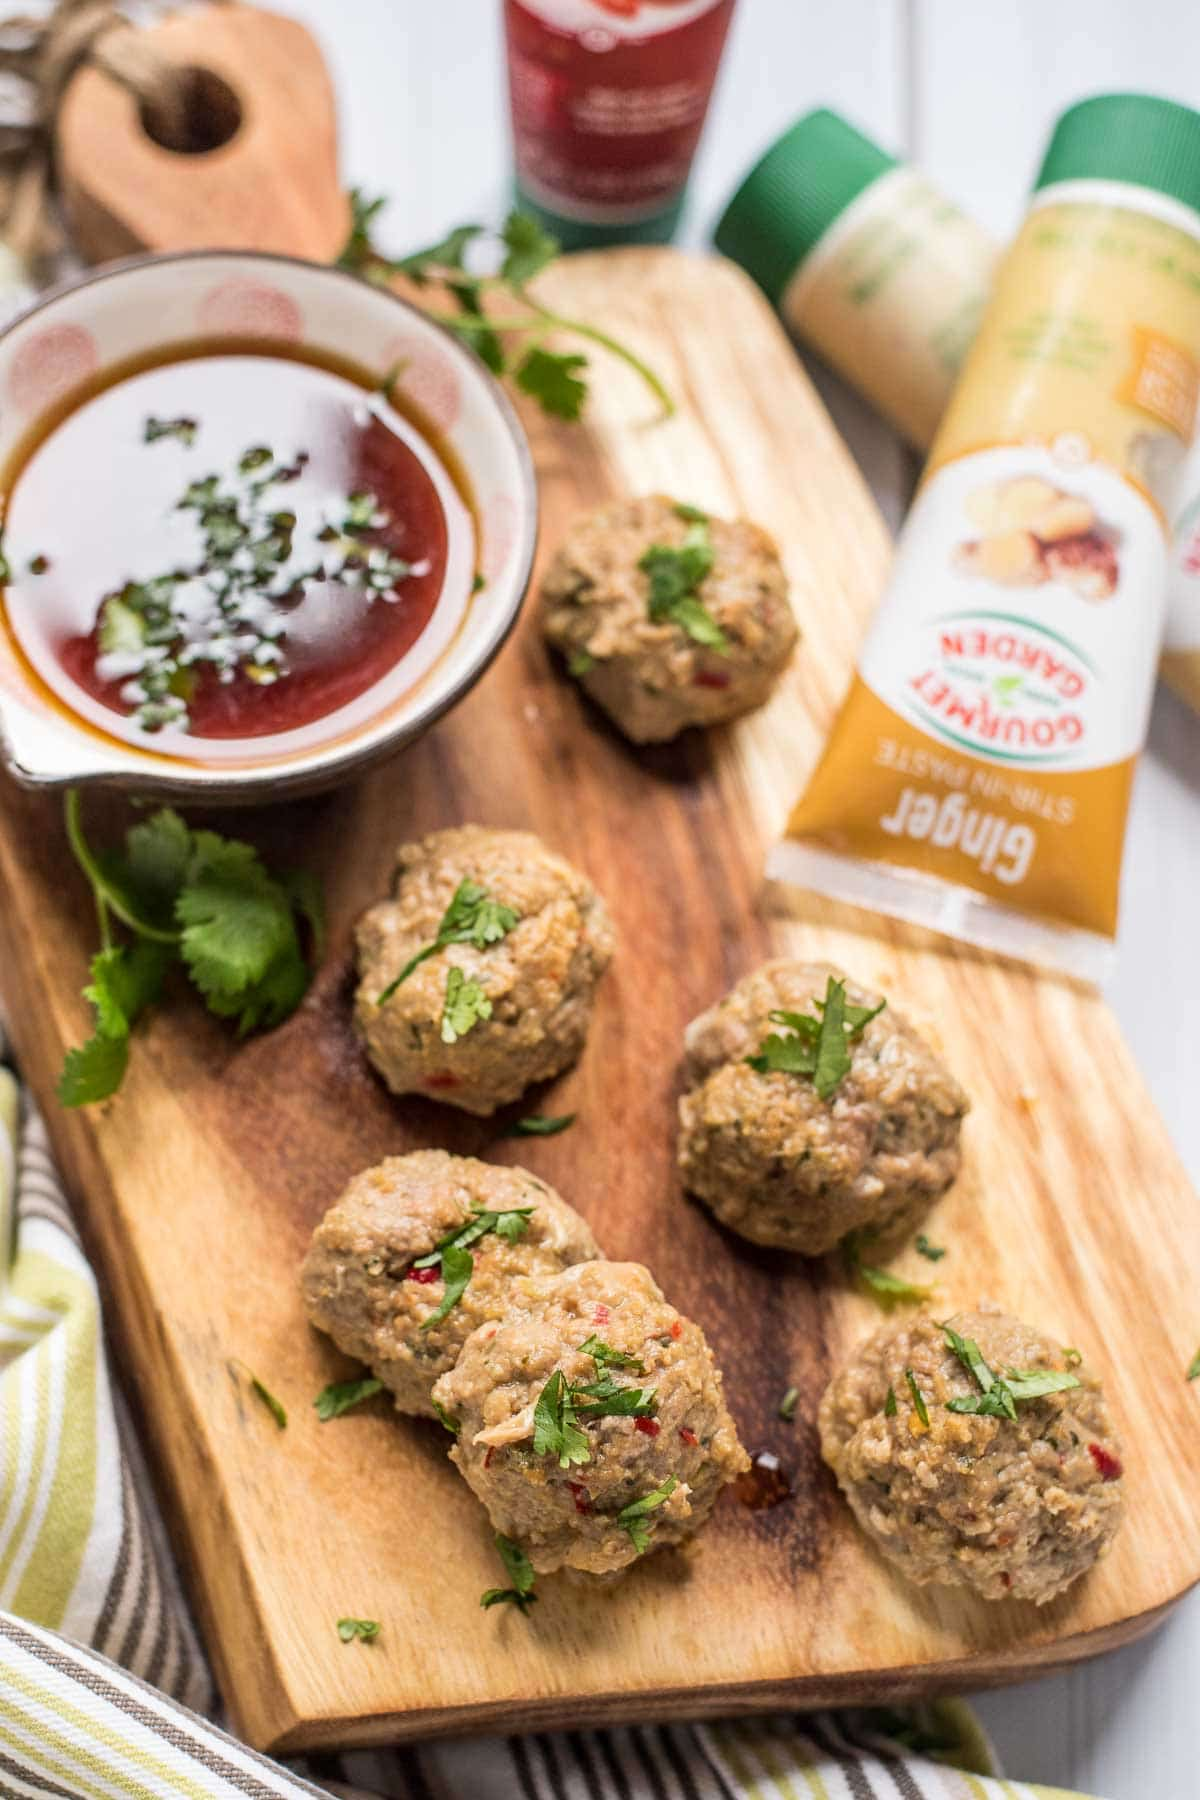 These Thai Turkey Meatballs loaded with ginger, garlic, cilantro, and chili pepper pack just the right amount of heat.